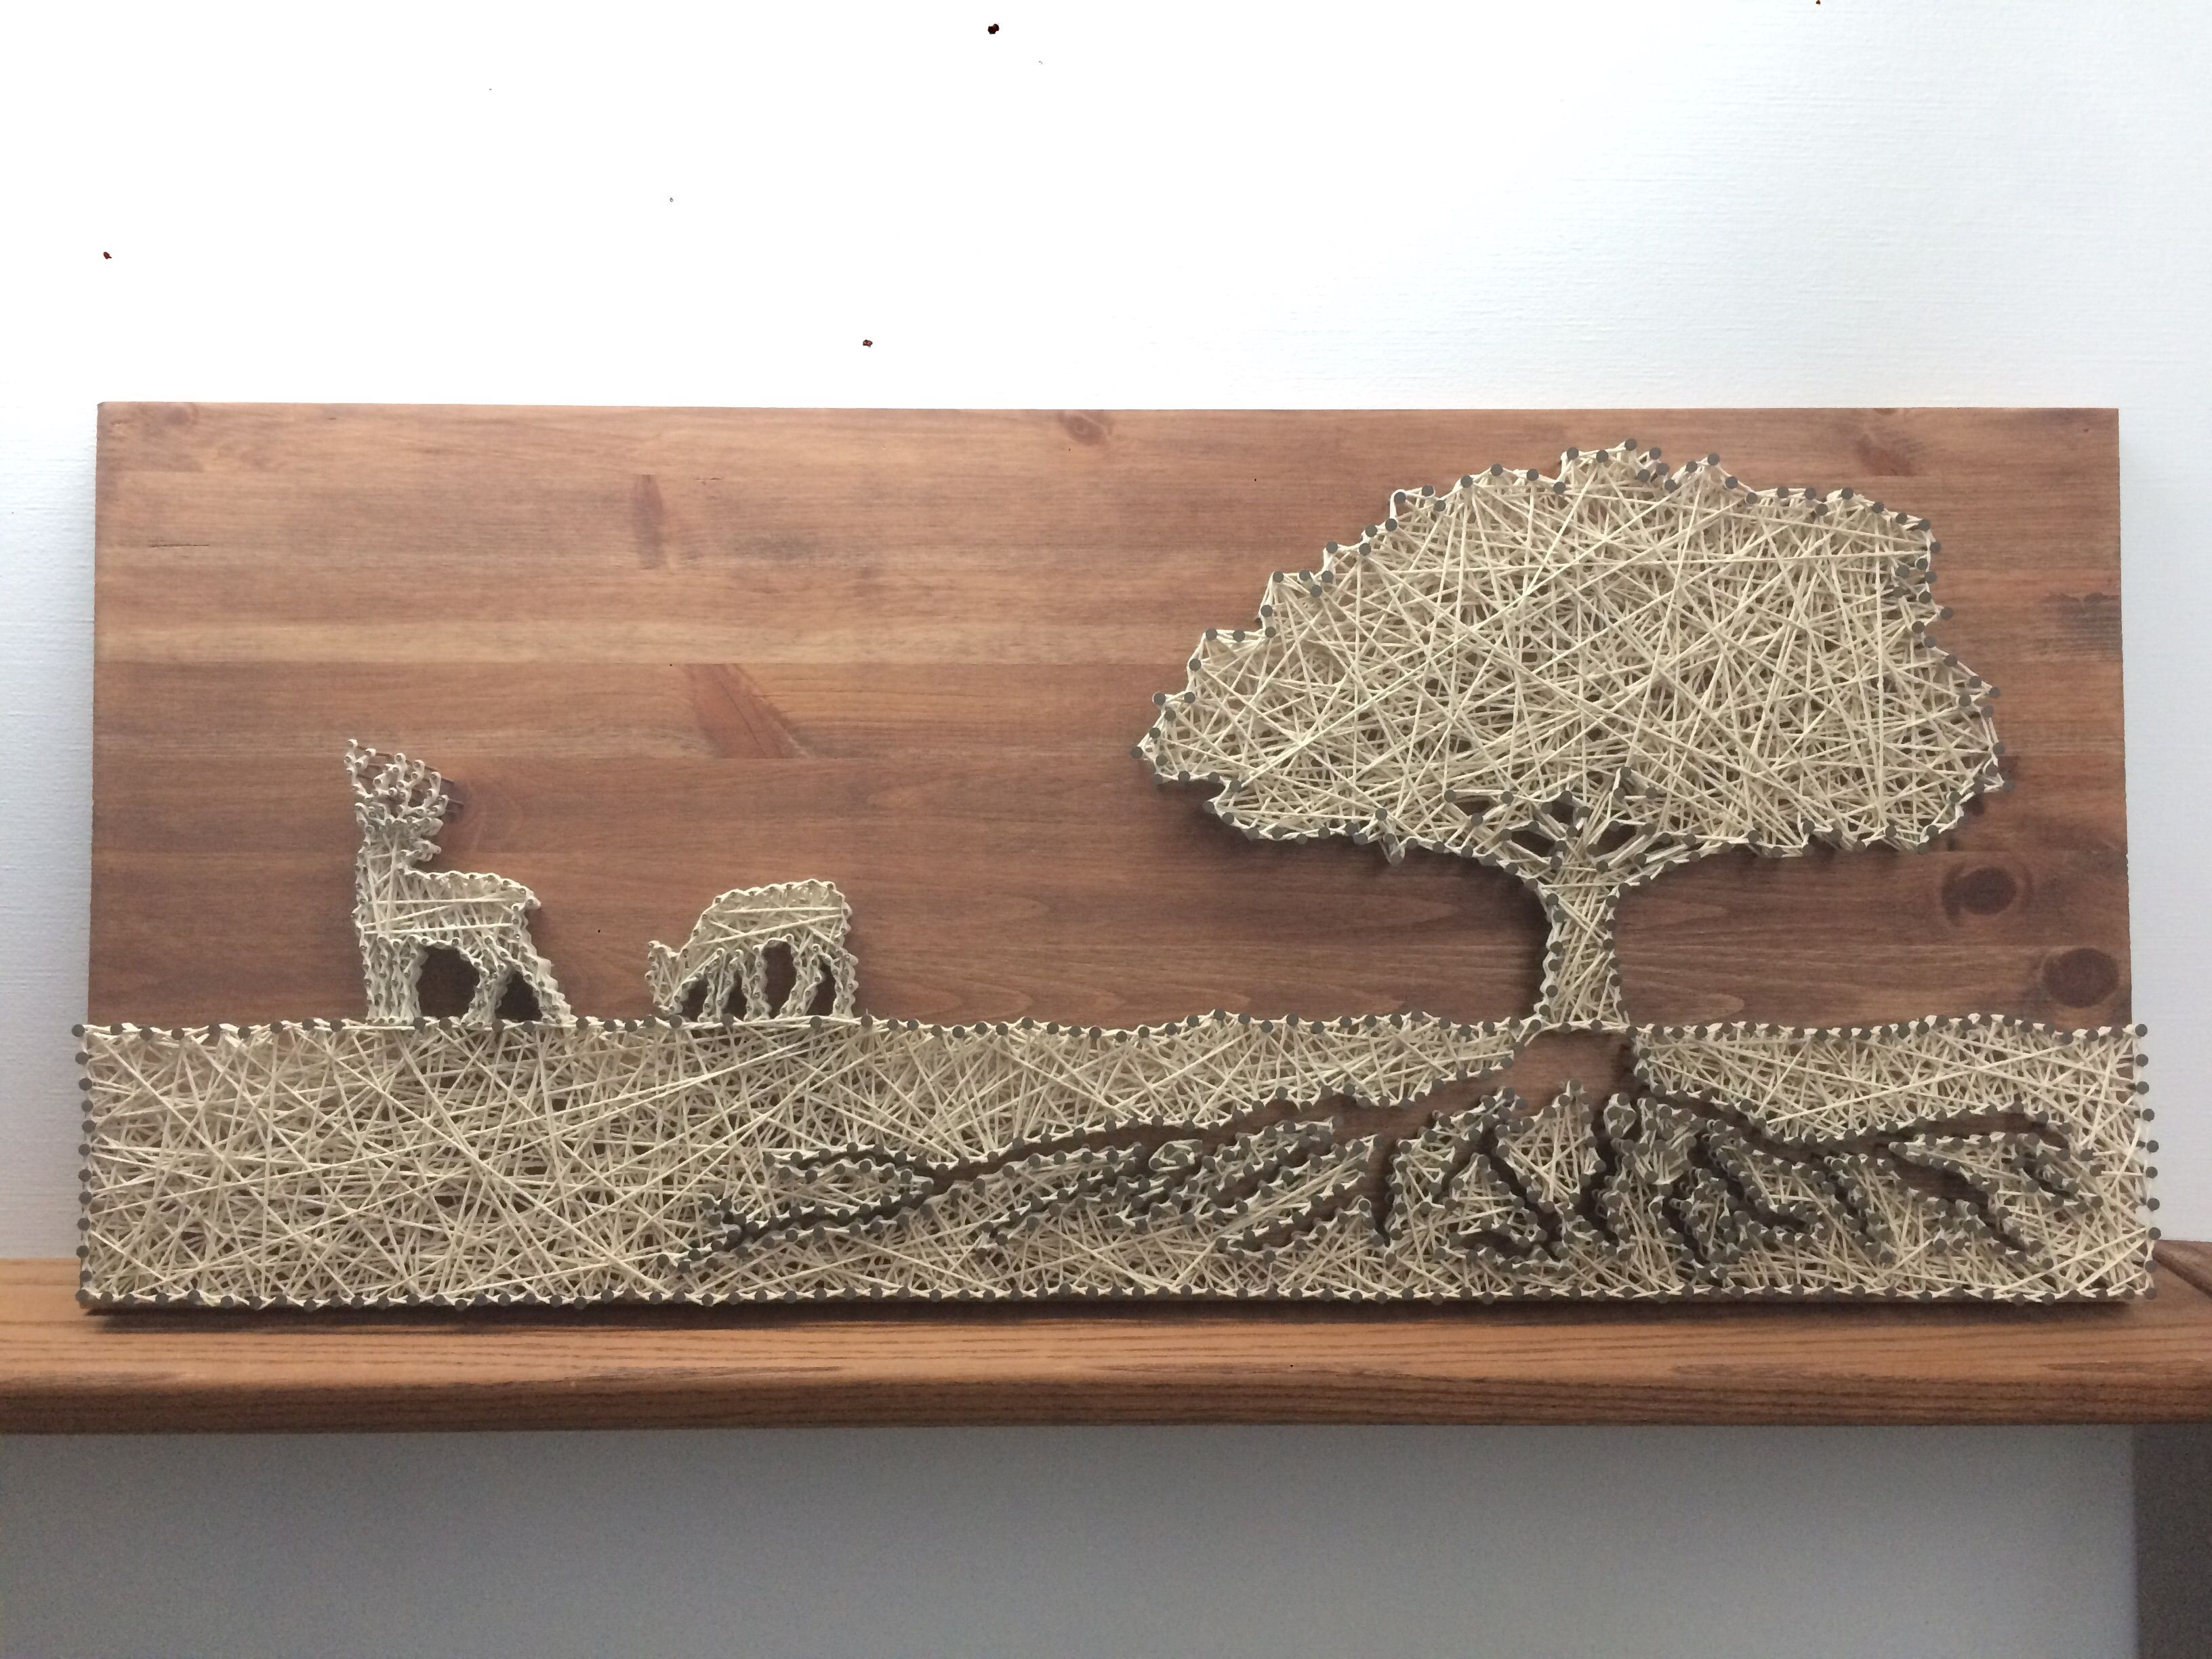 String art of 2 deers, tree and roots made by me and my boyfriend